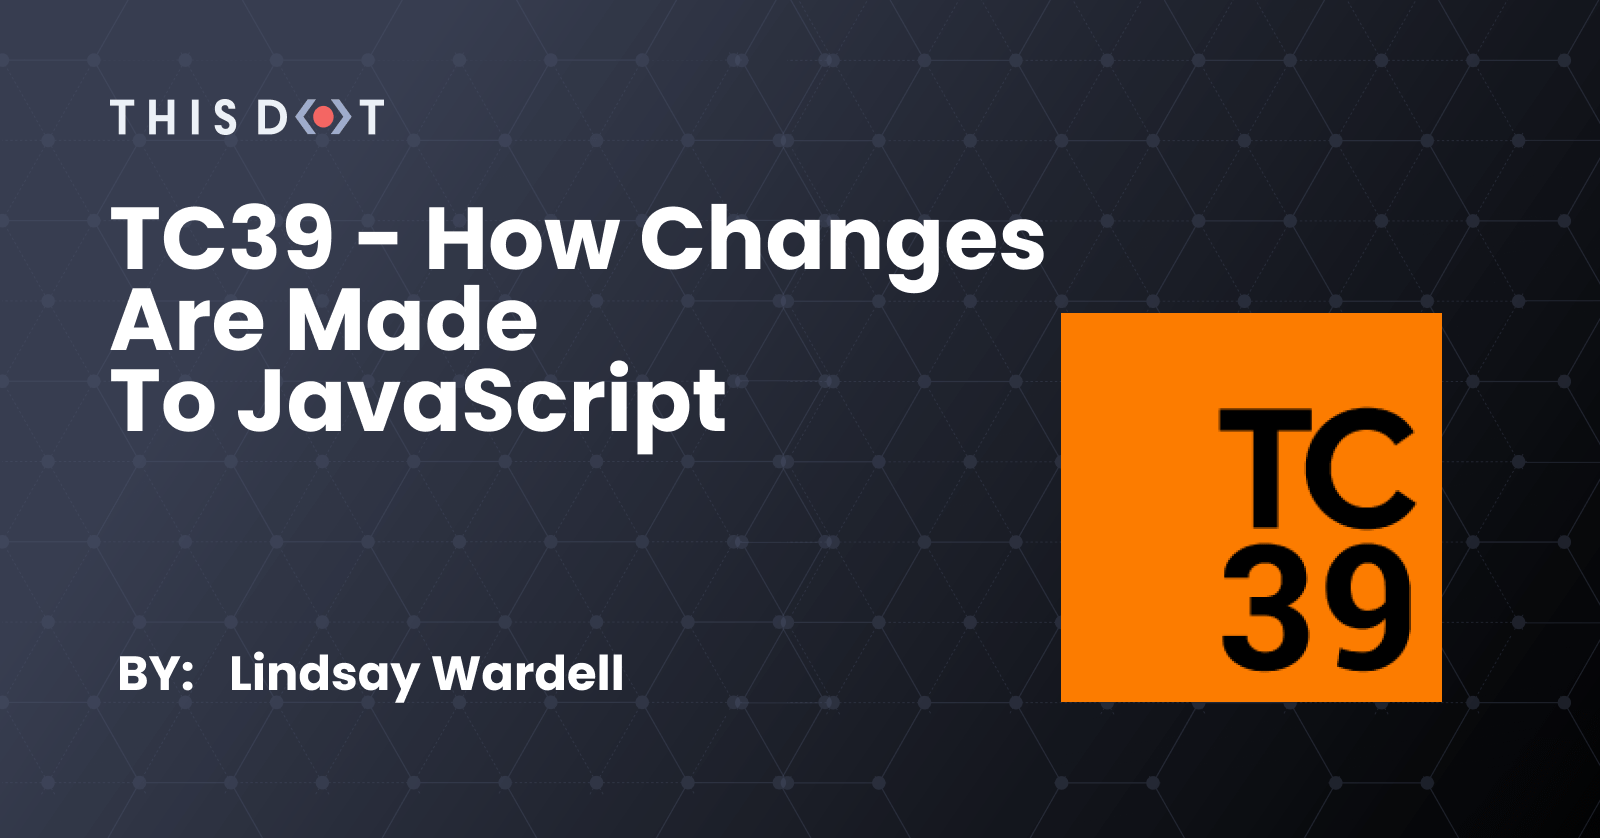 TC39 - How Changes are Made to JavaScript